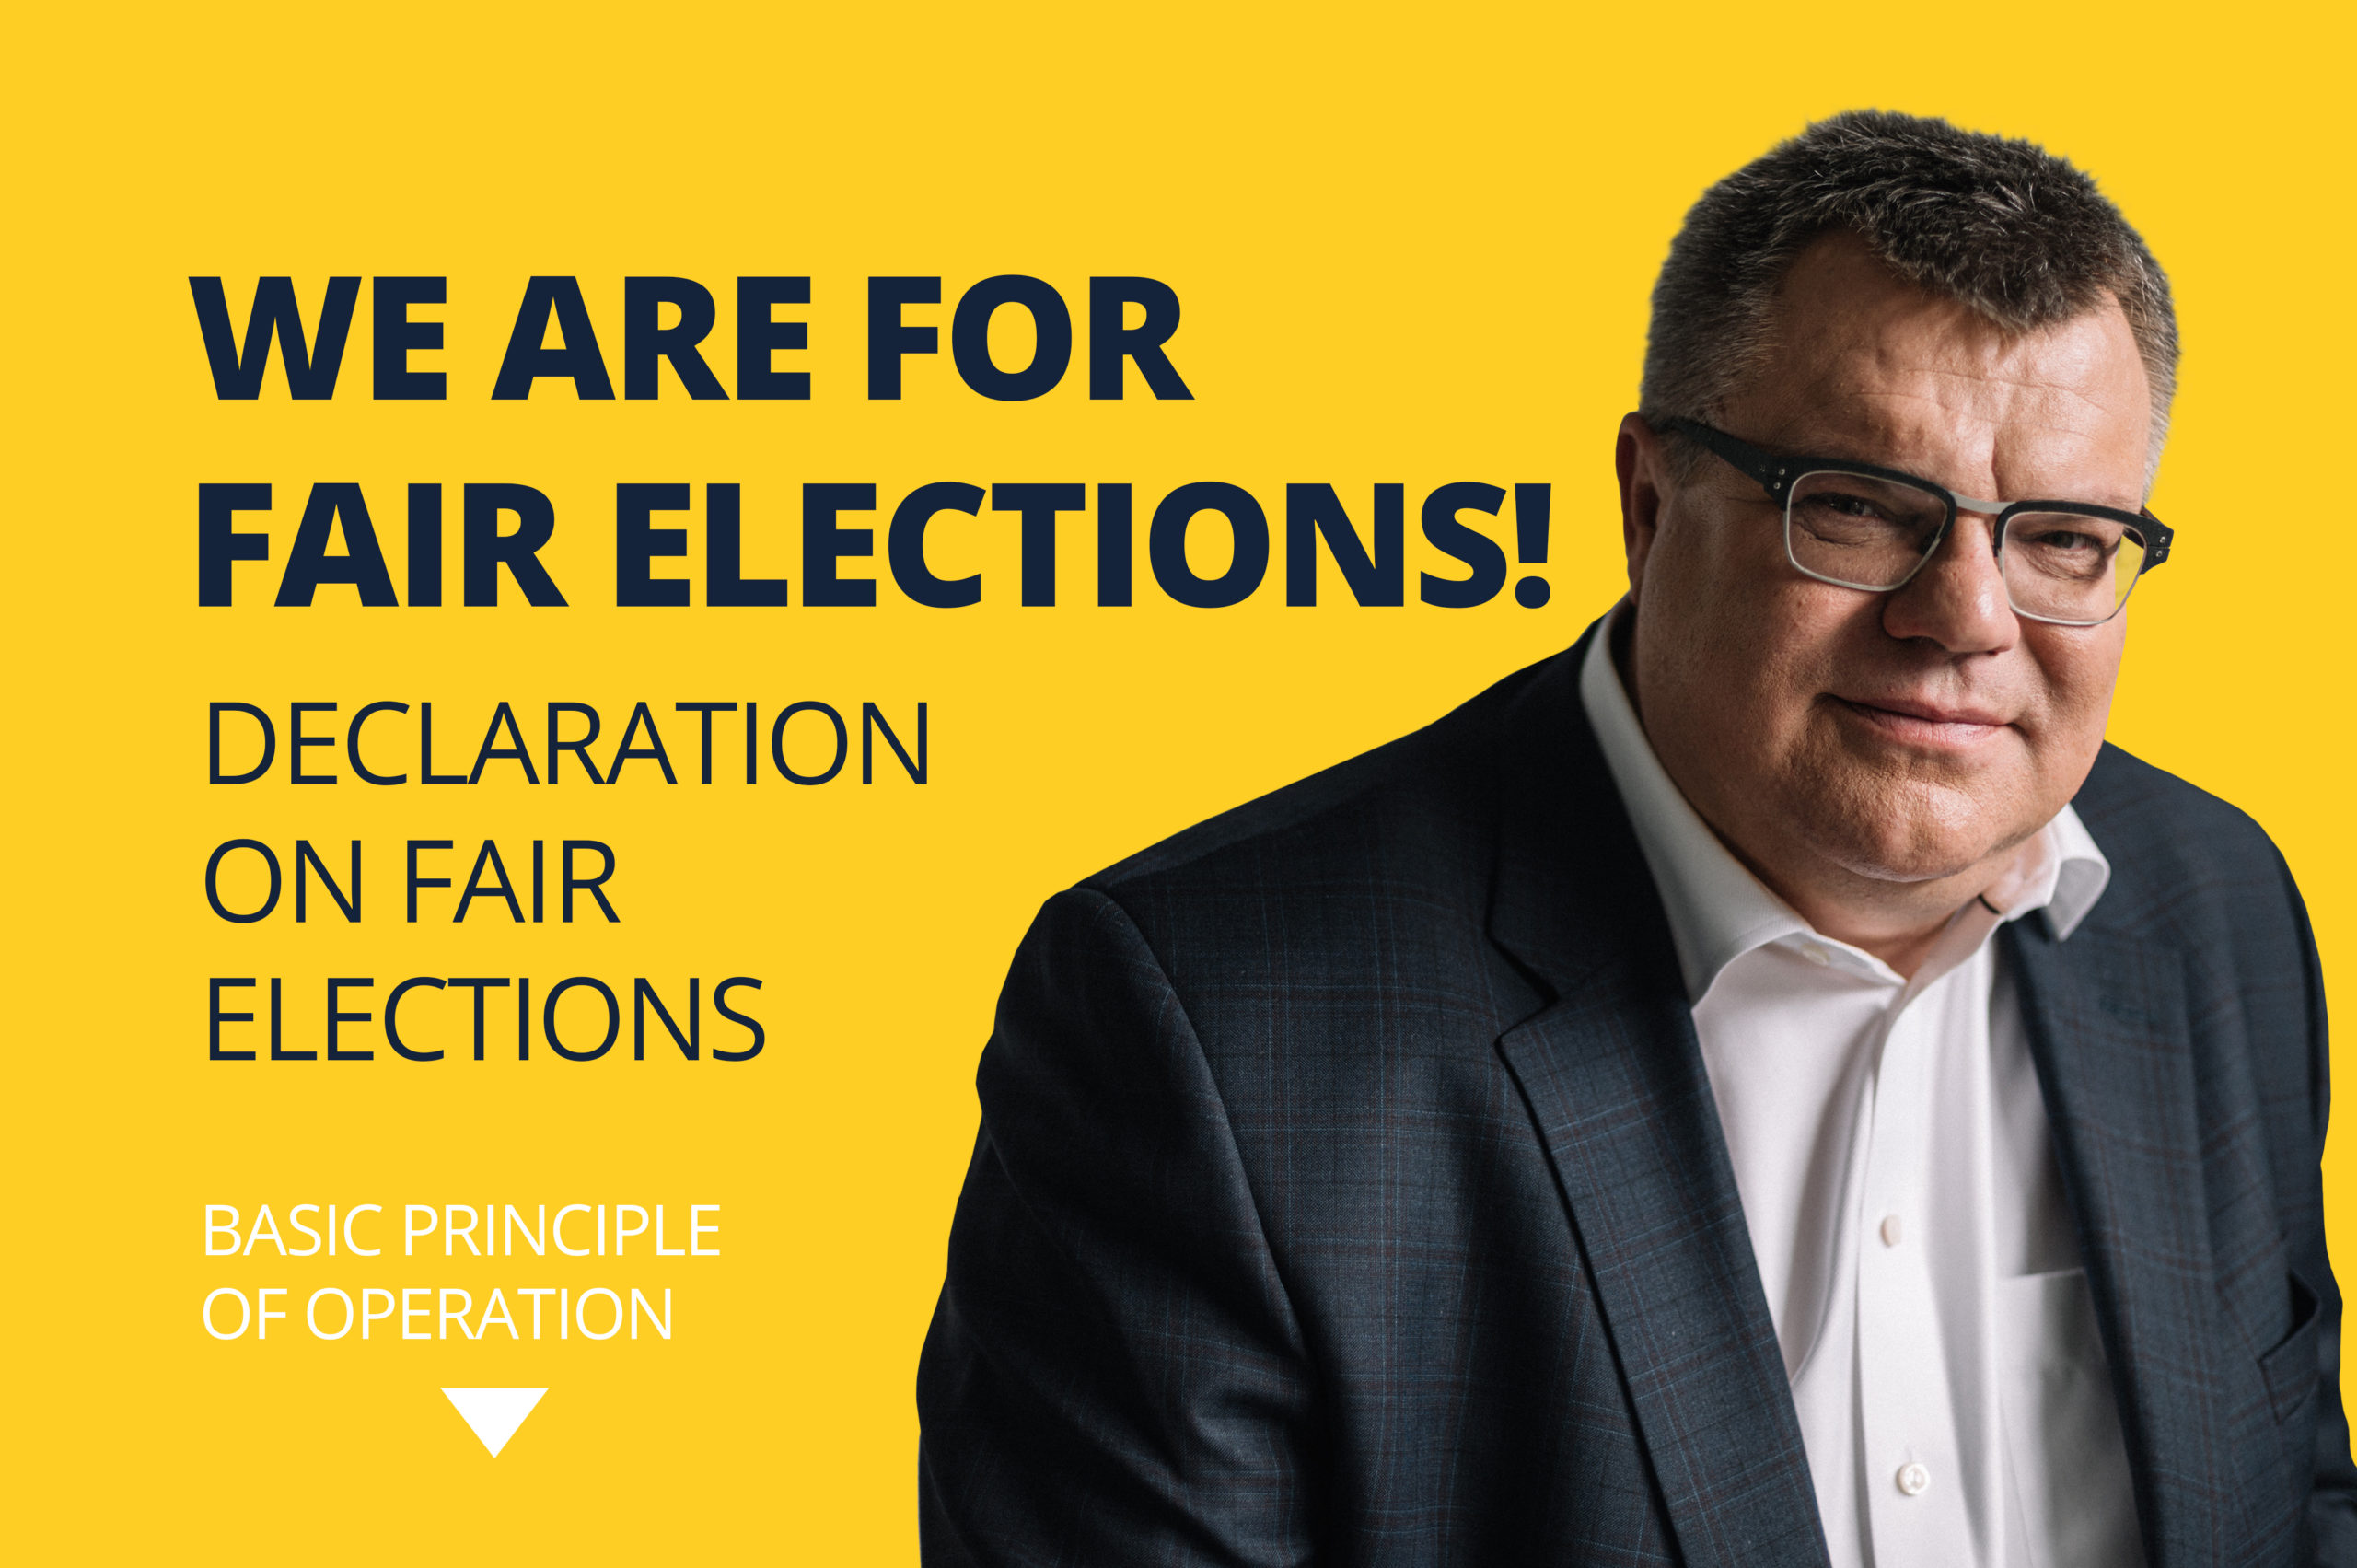 WE ARE FOR FAIR ELECTIONS! DECLARATION ON FAIR ELECTIONS BASIC PRINCIPLE OF OPERATION